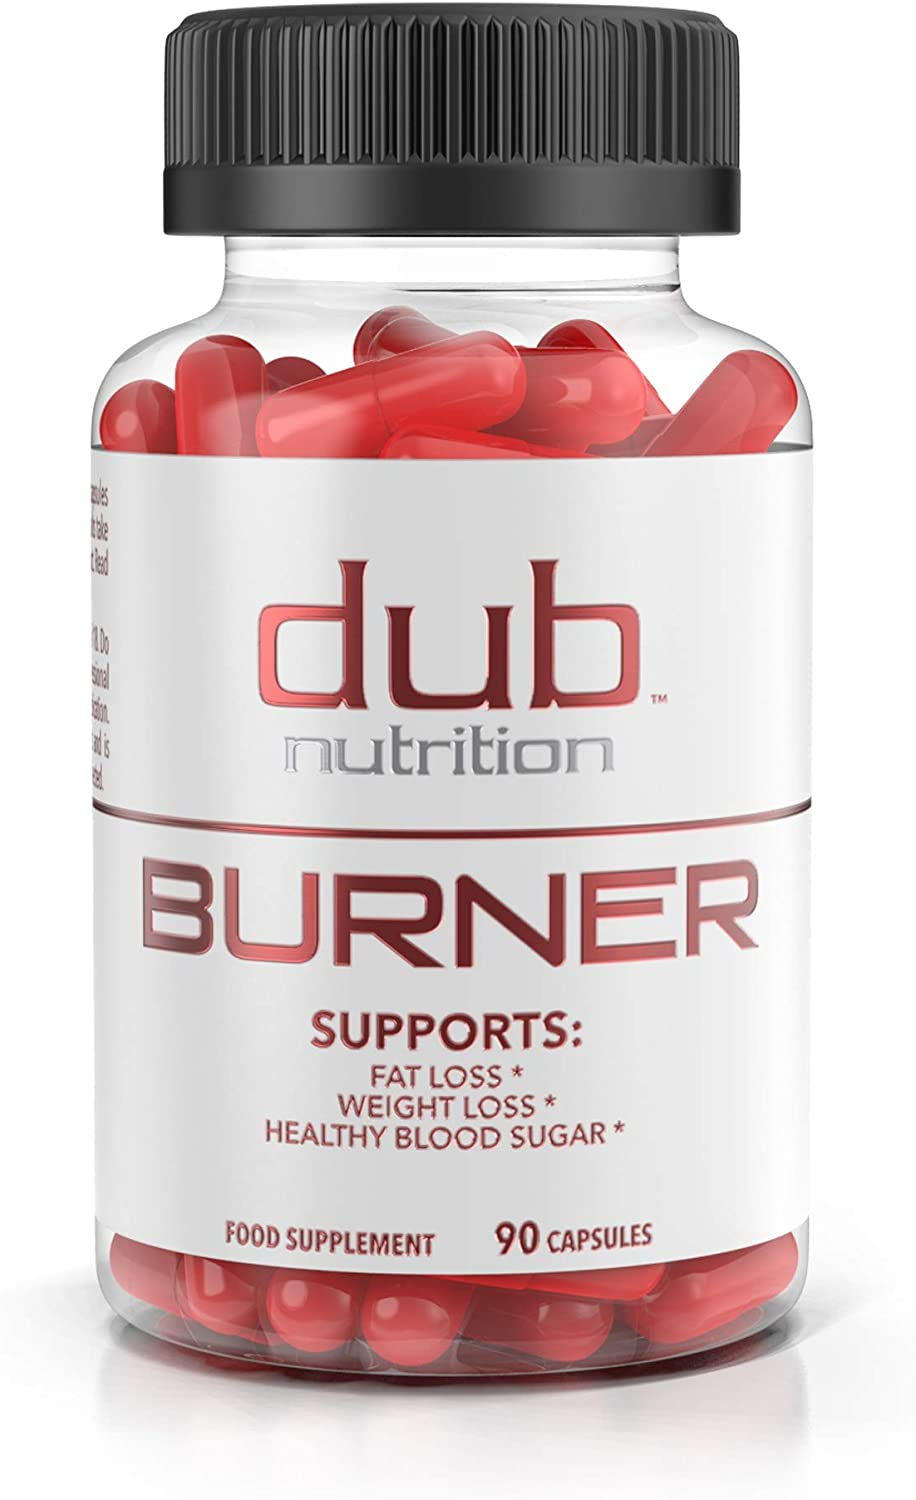 Fat Burner by dub Nutrition Best Weight Loss Pills Thermogenic Supplement Natural Energy and Appetite Suppressant, Includes Red Rasberry Ketones, Guarana, and BCAA. 90 Capsules. Fast Absorbing.